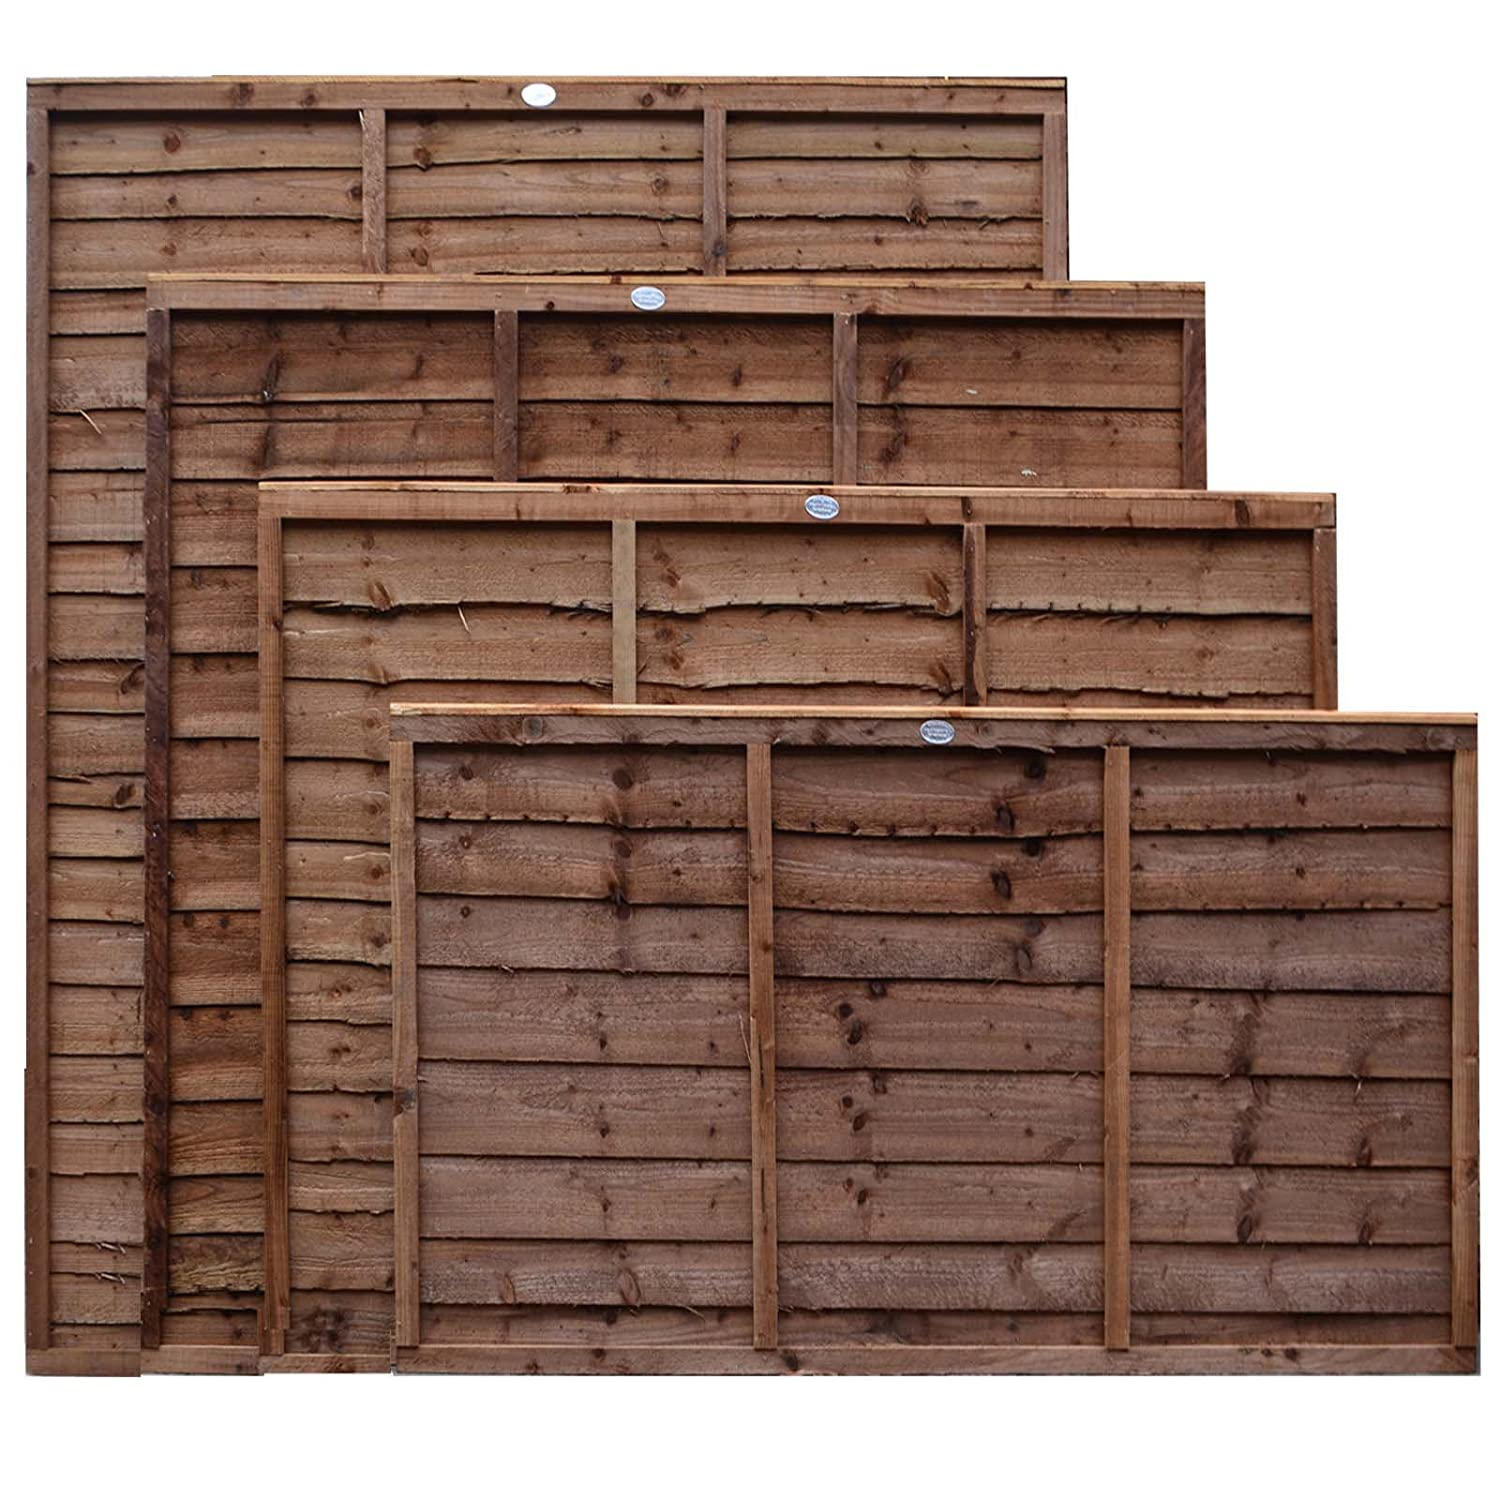 Weatherwell Lap Wooden Fence Panels 3ft, 4ft, 5ft, 6ft Horizontal Dip Treated (6ft x 3ft)